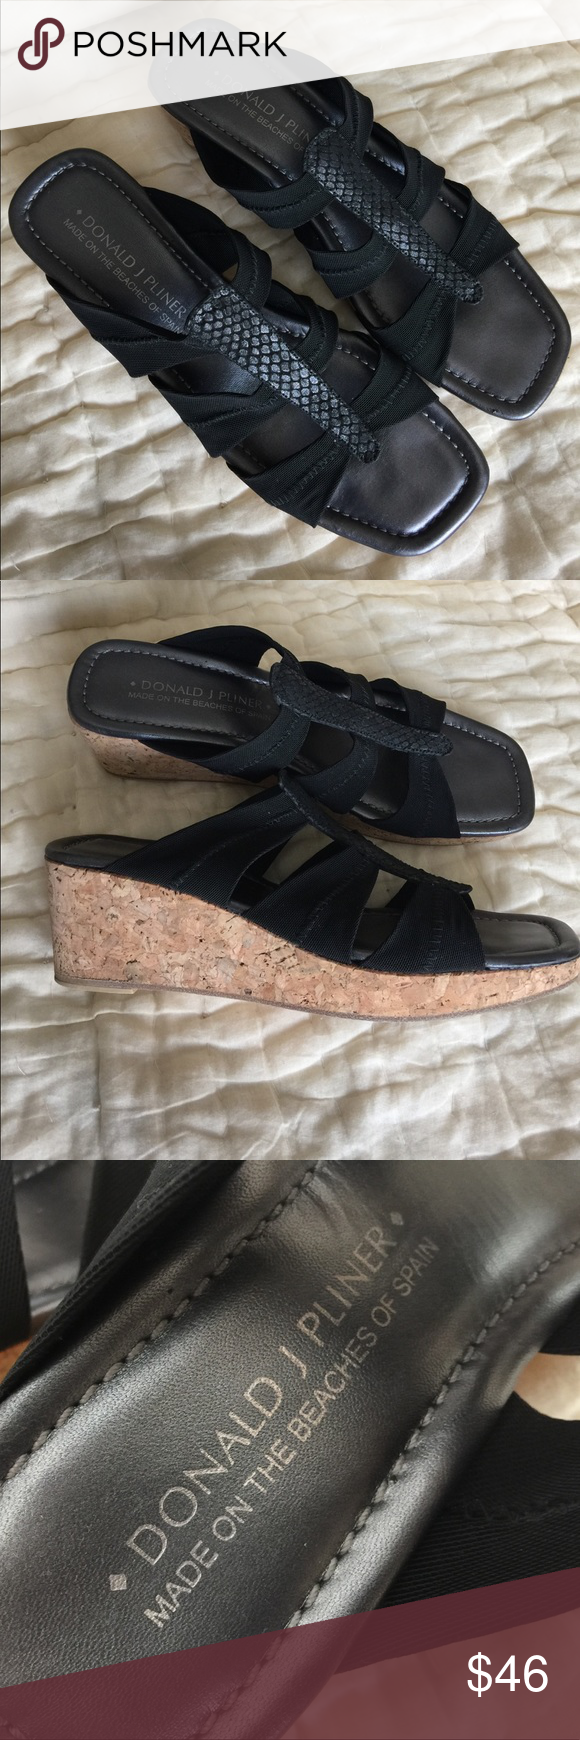 Donald J. Pliner wedges Made on the beaches of Spain. Used but in very good condition. Donald J. Pliner Shoes Wedges